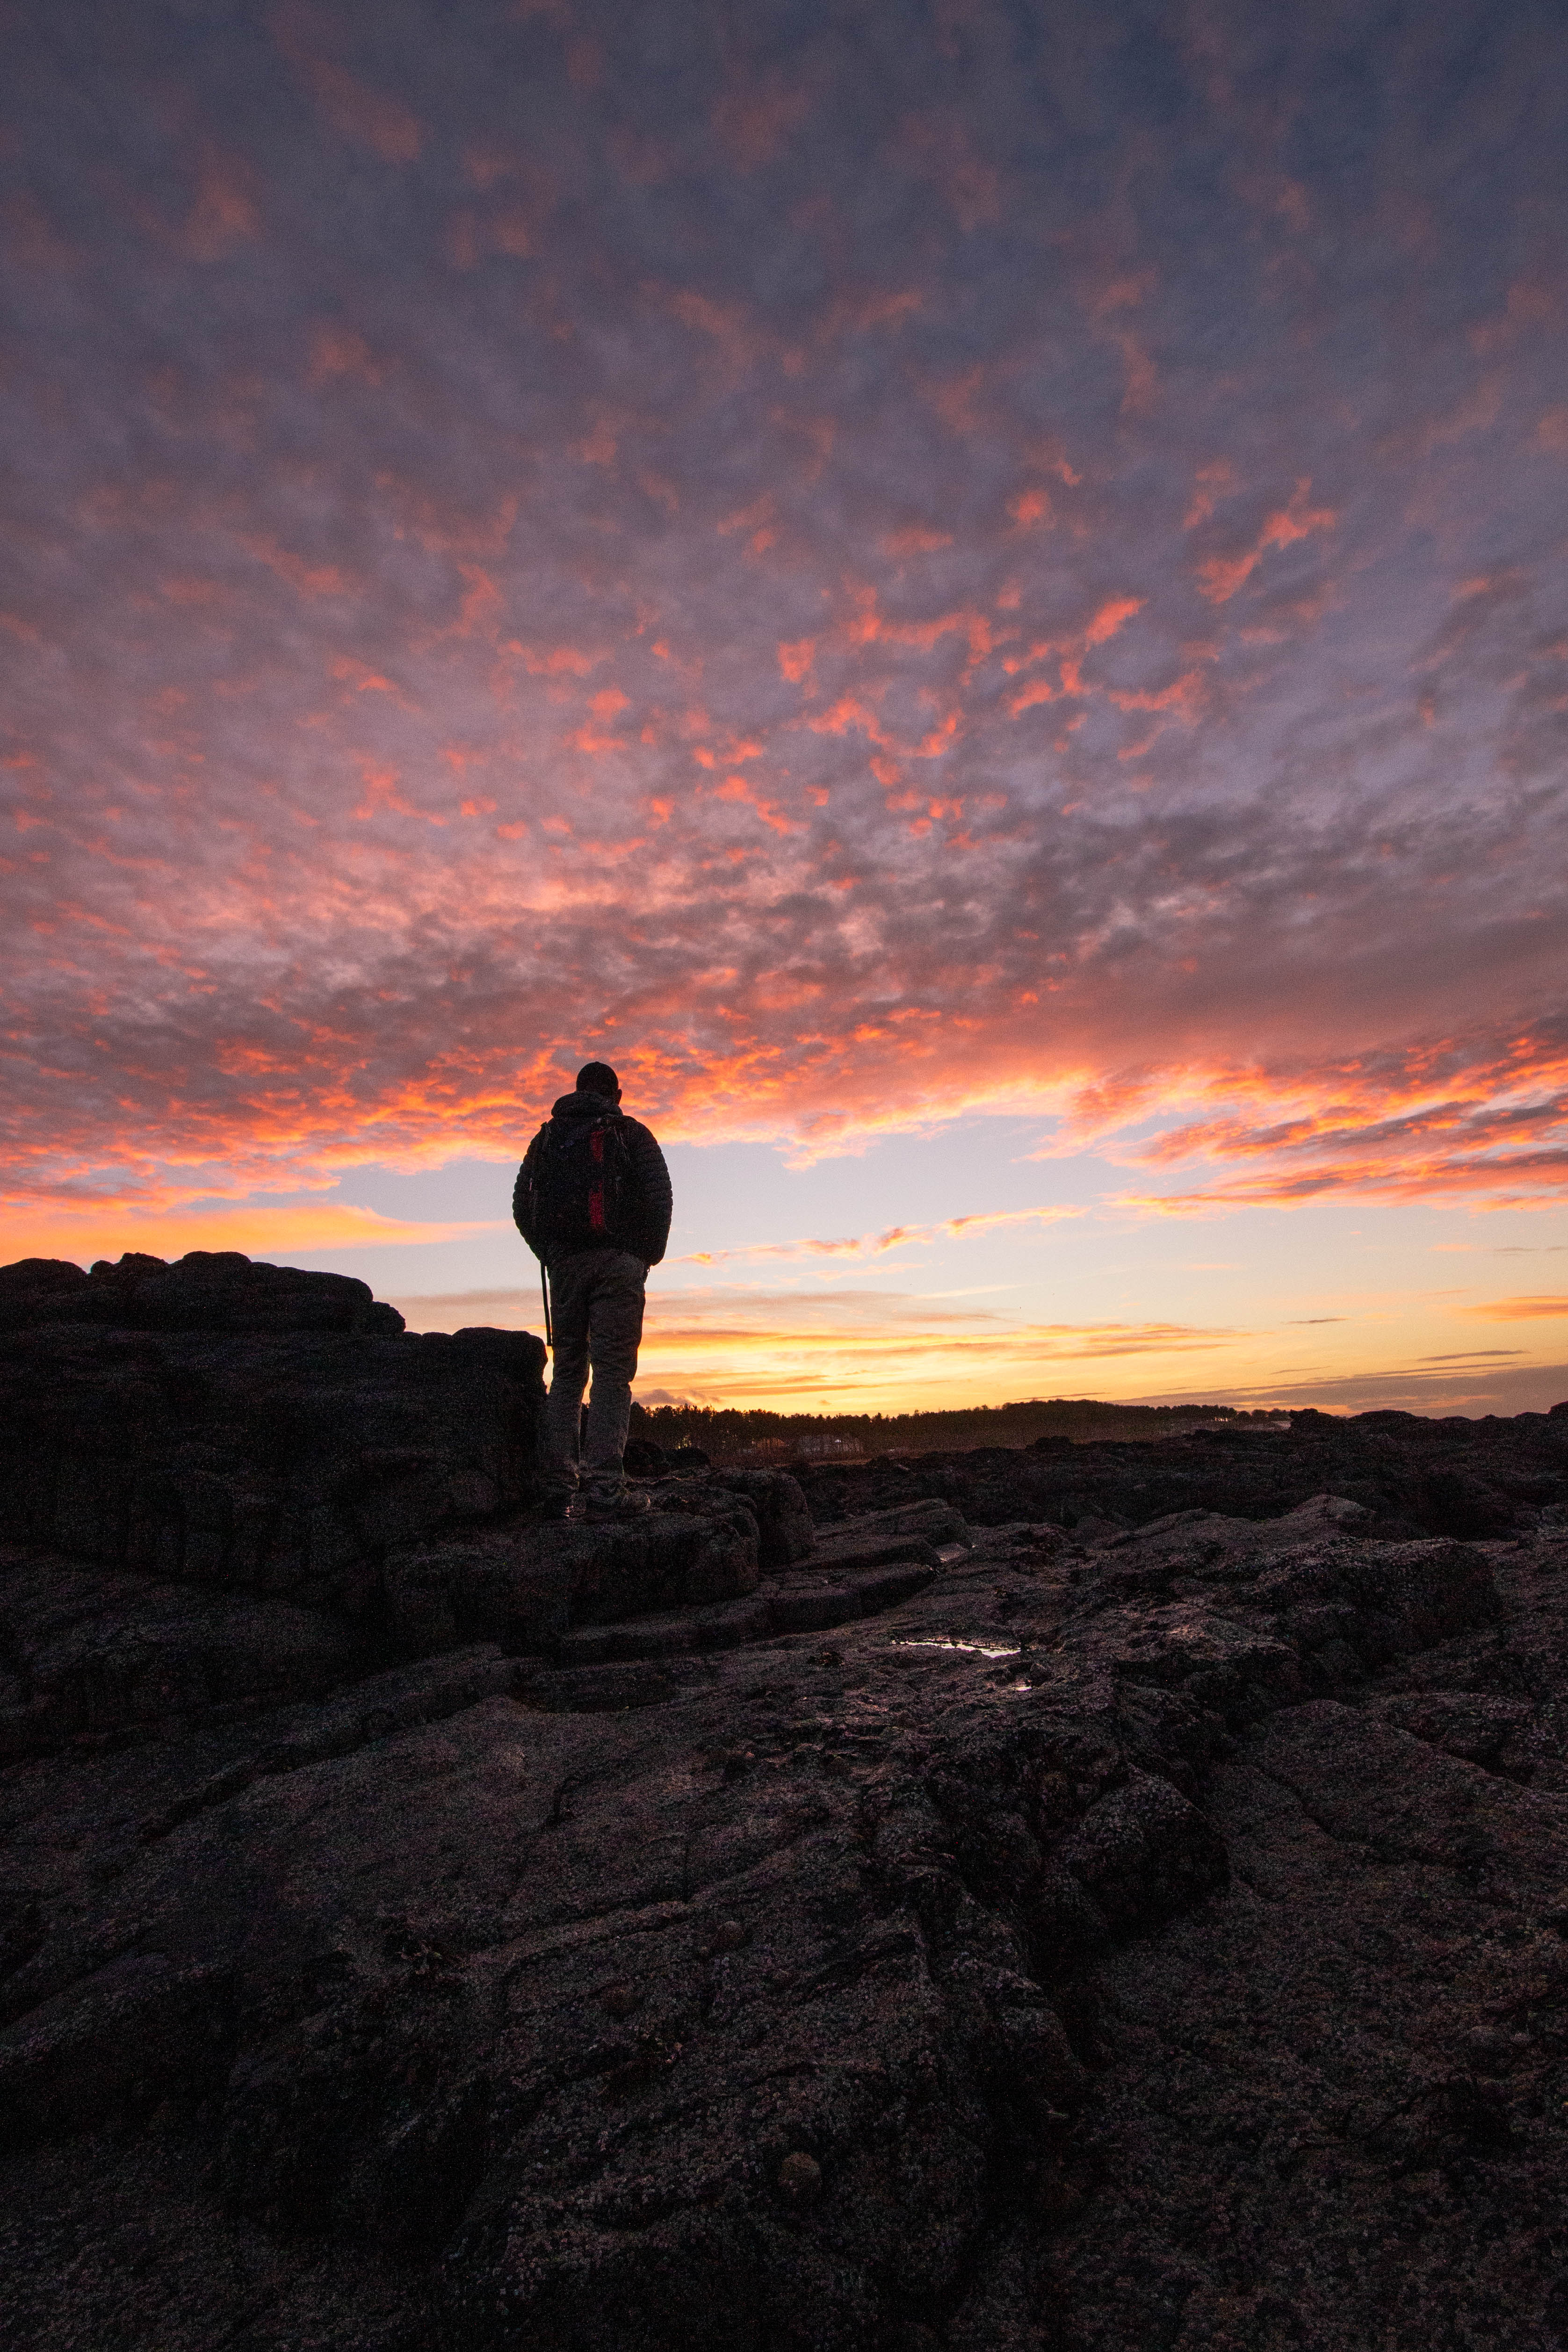 Silhouette of a person against a vibrant sunset at Yellowcraig Beach